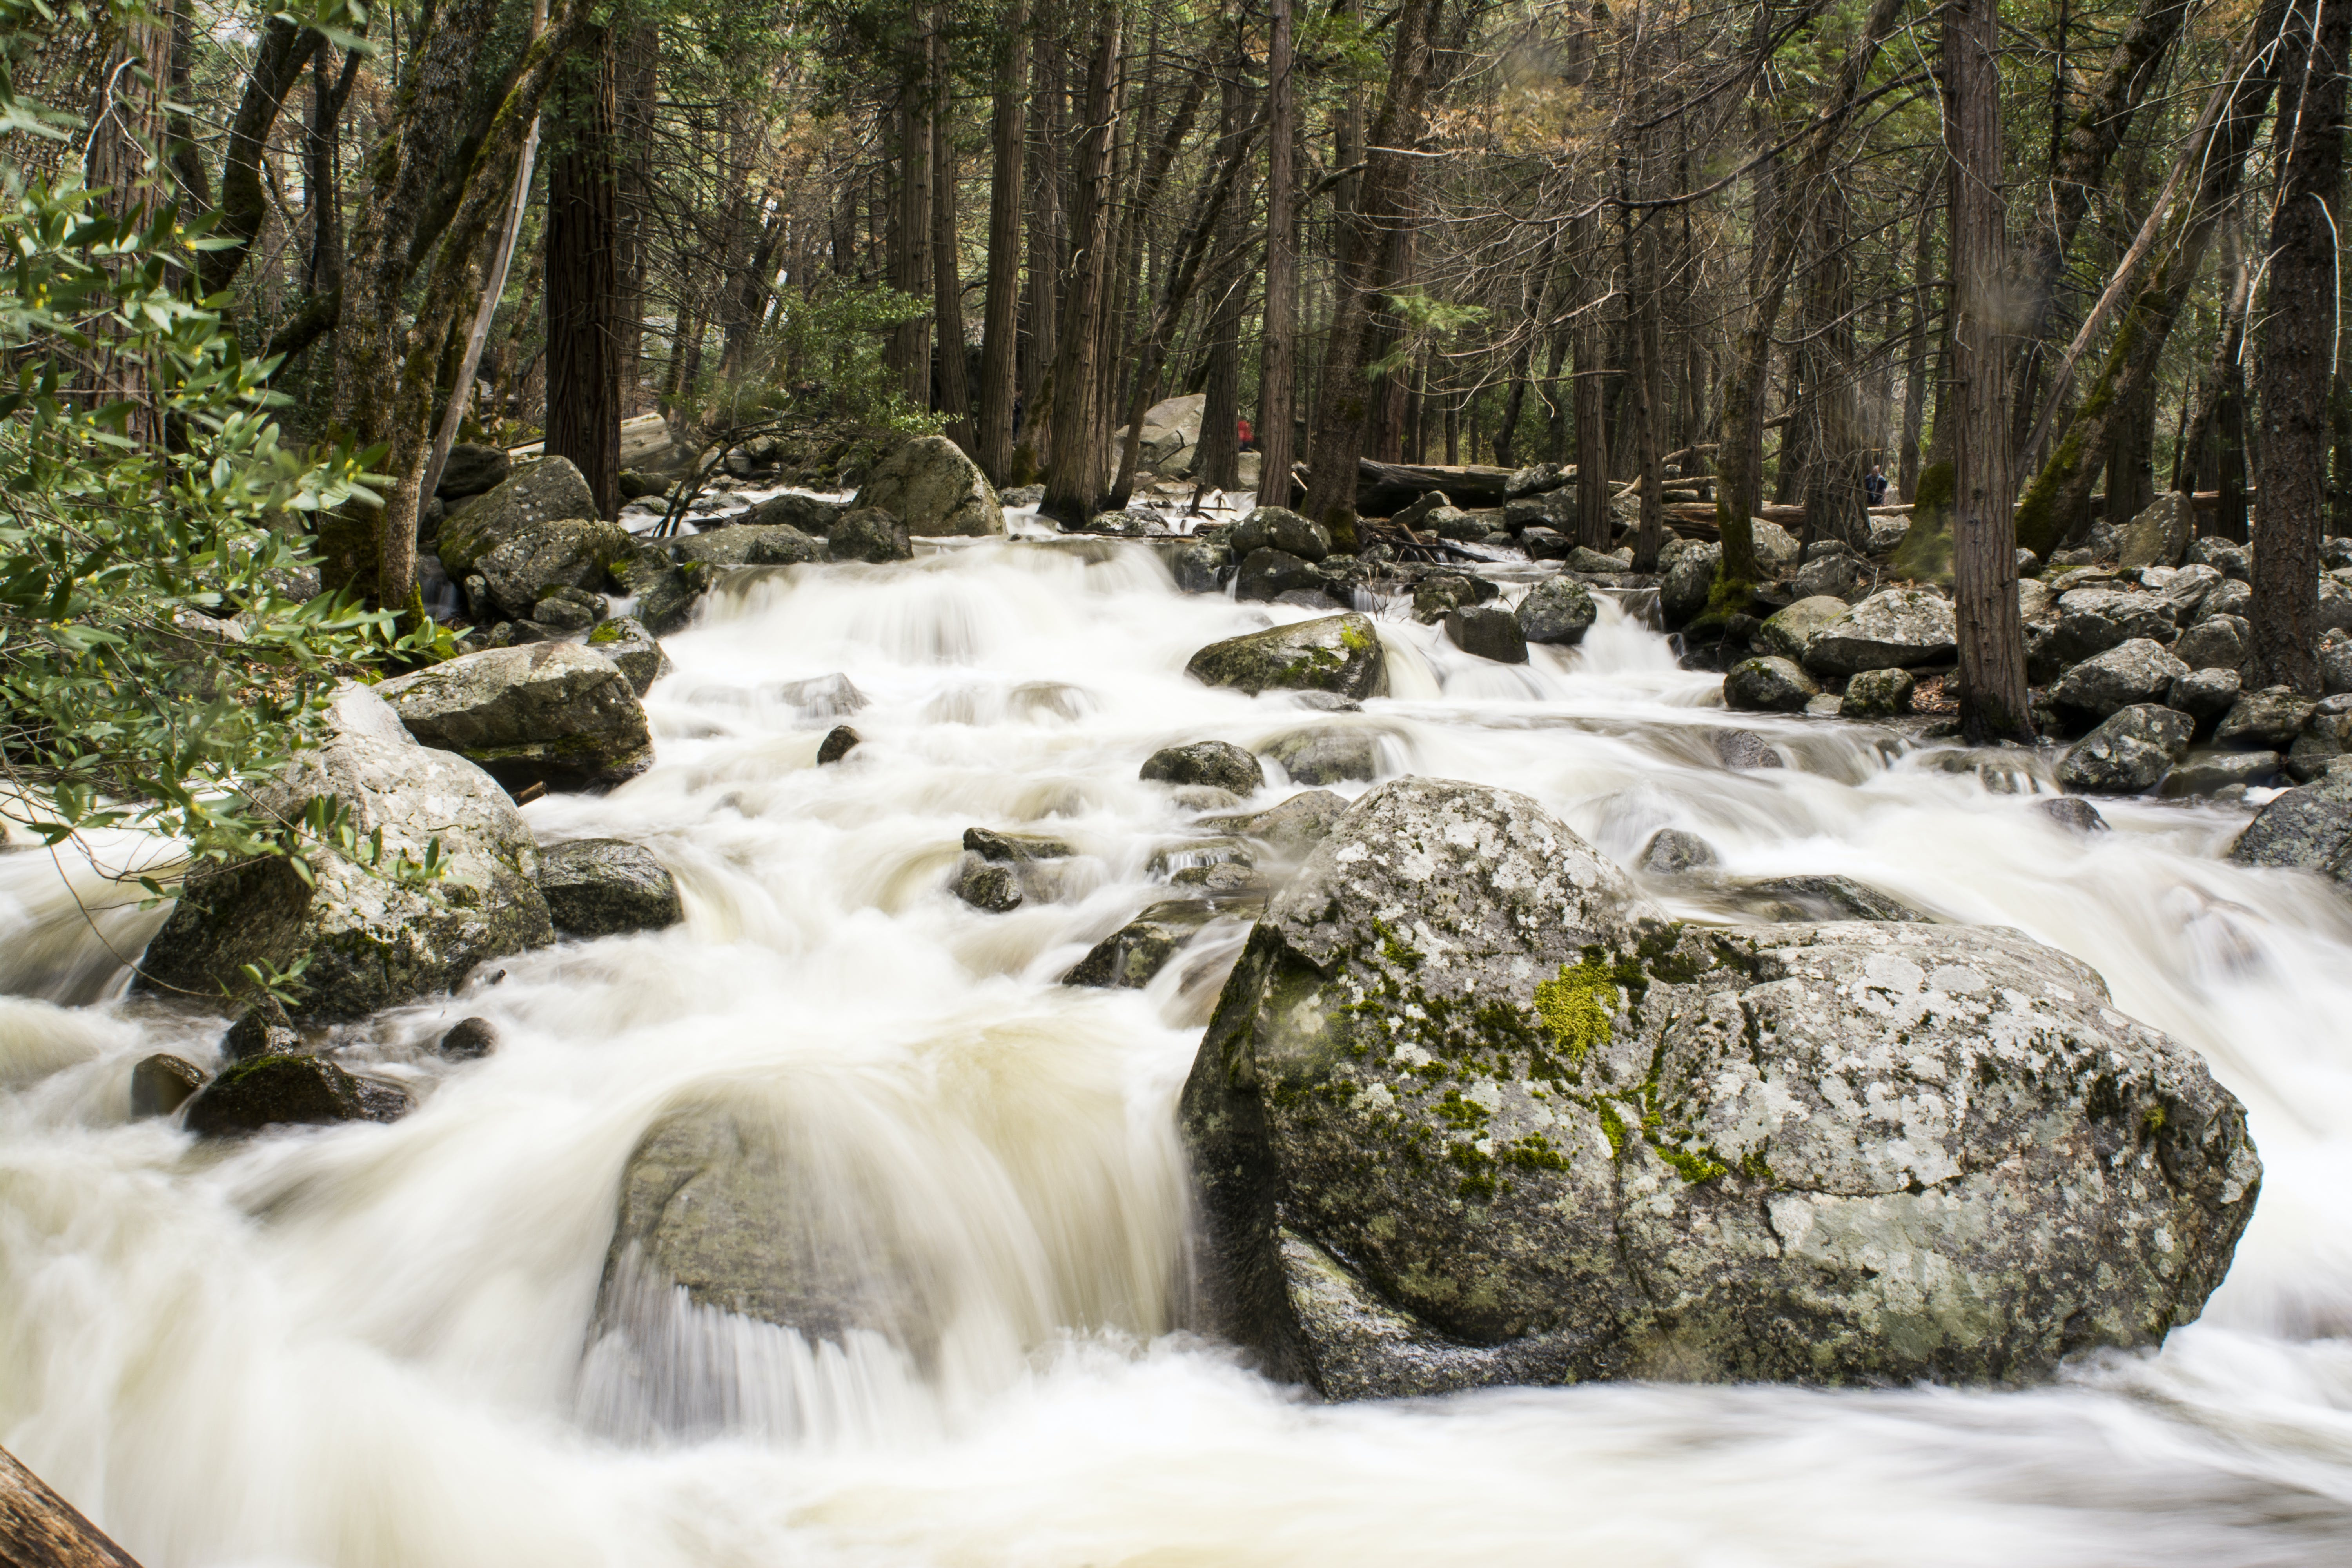 Rocks and Trees on Running Water